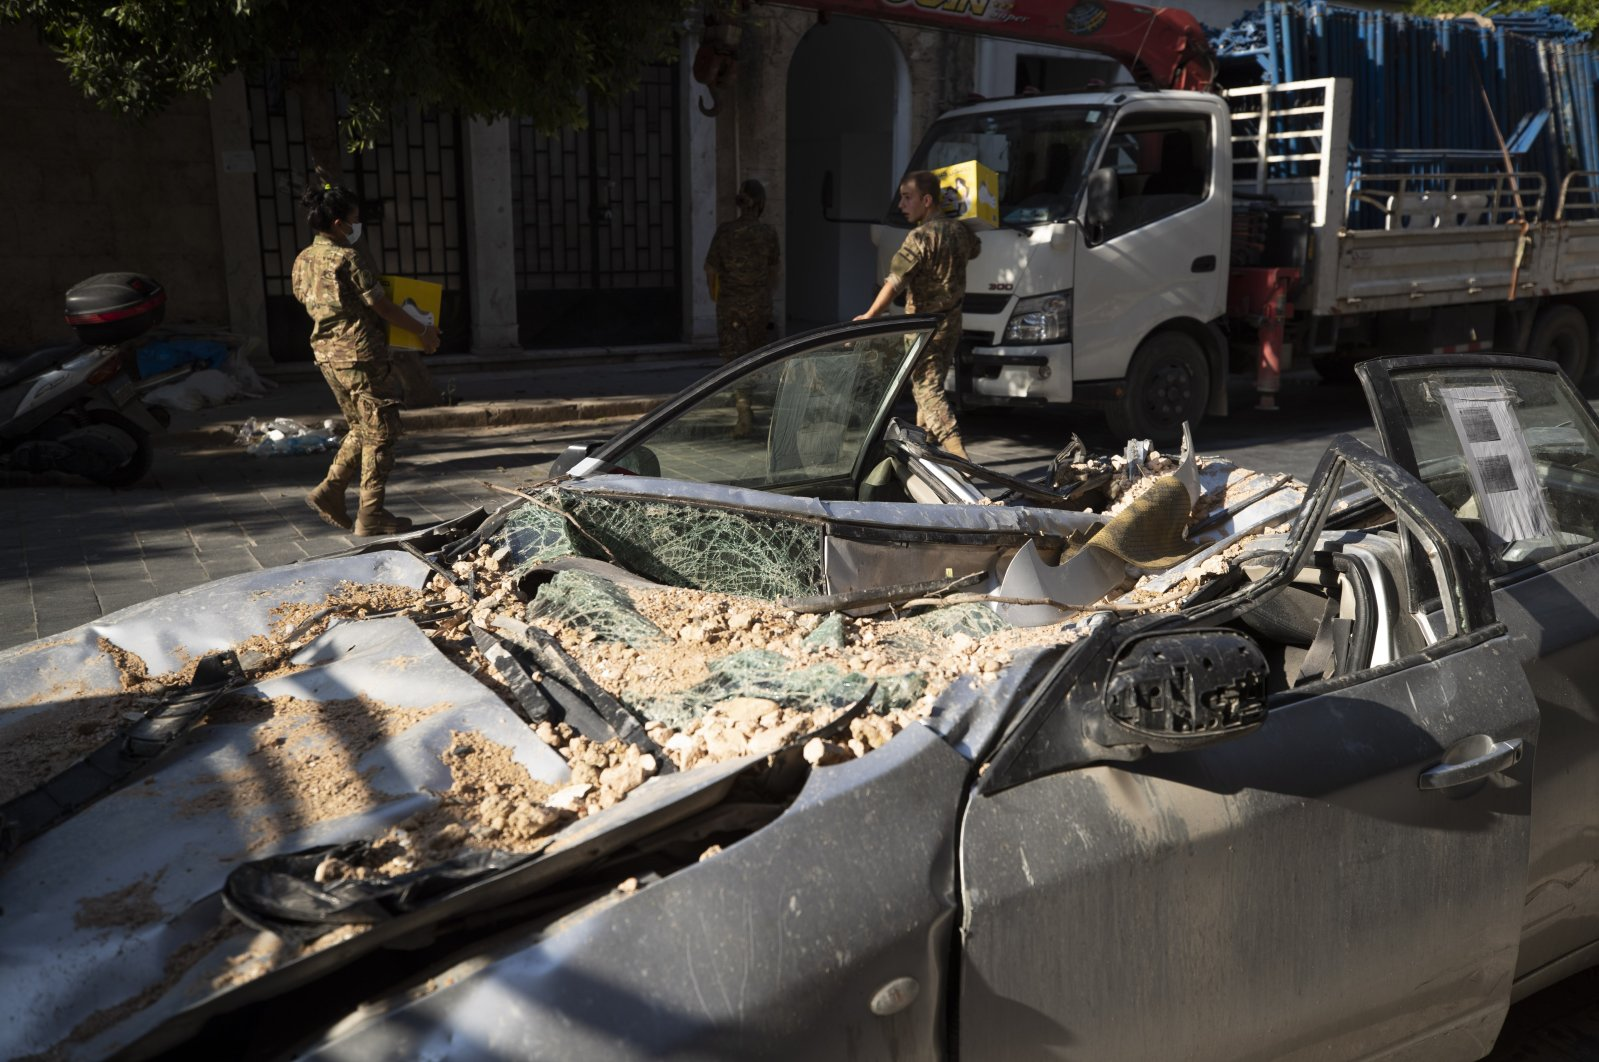 Lebanese Army soldiers carry aid boxes past a destroyed car near the scene of last week's explosion that hit the seaport of Beirut, Lebanon, Aug. 12, 2020. (AP Photo)